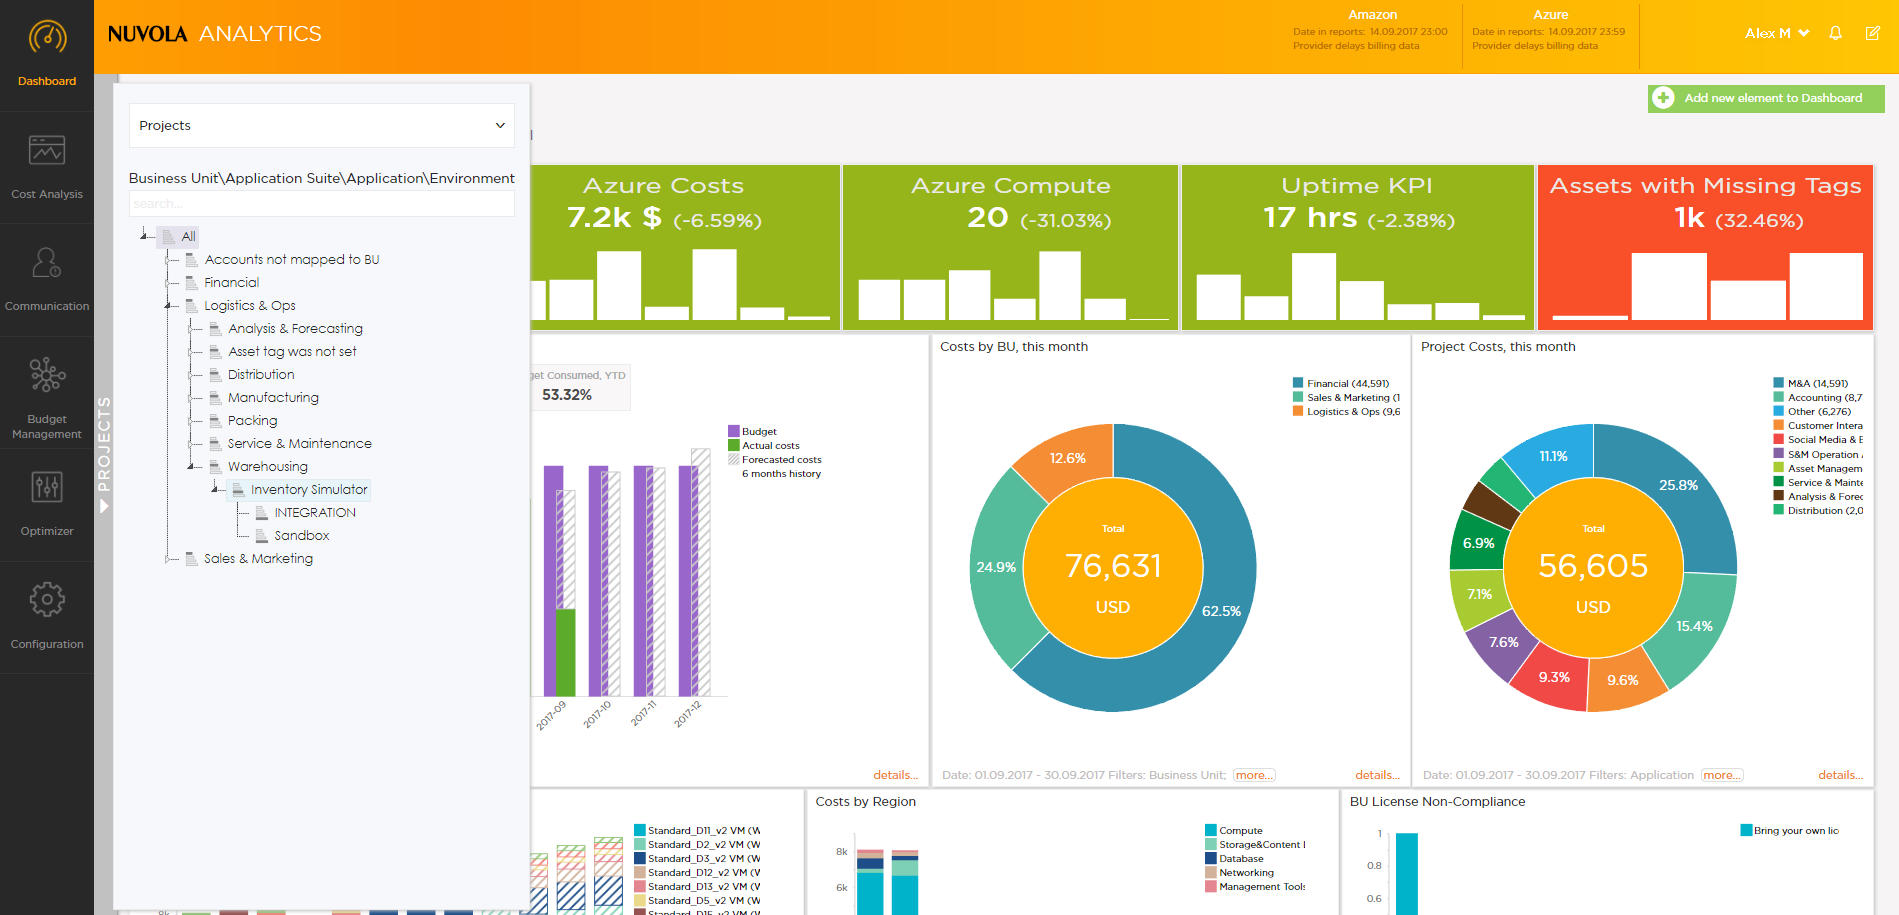 Nuvola Analytics gives you a relevant, actionable and timely insight into the cloud consumption and costs